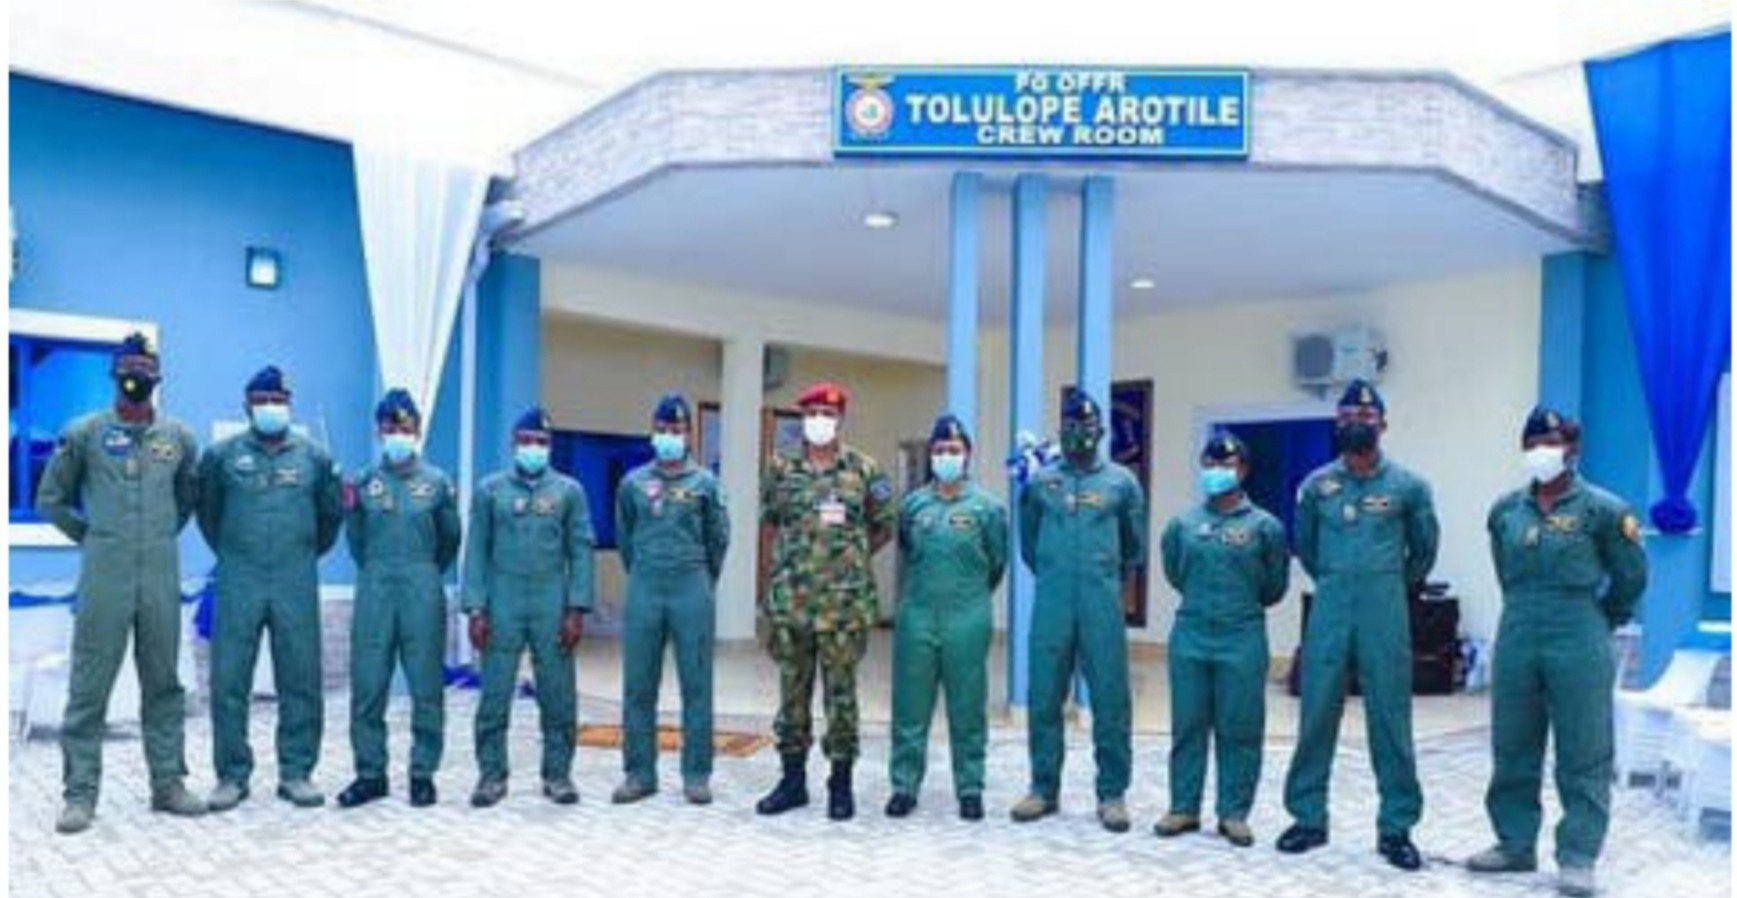 Airforce names building after late female combat officer, Arotile